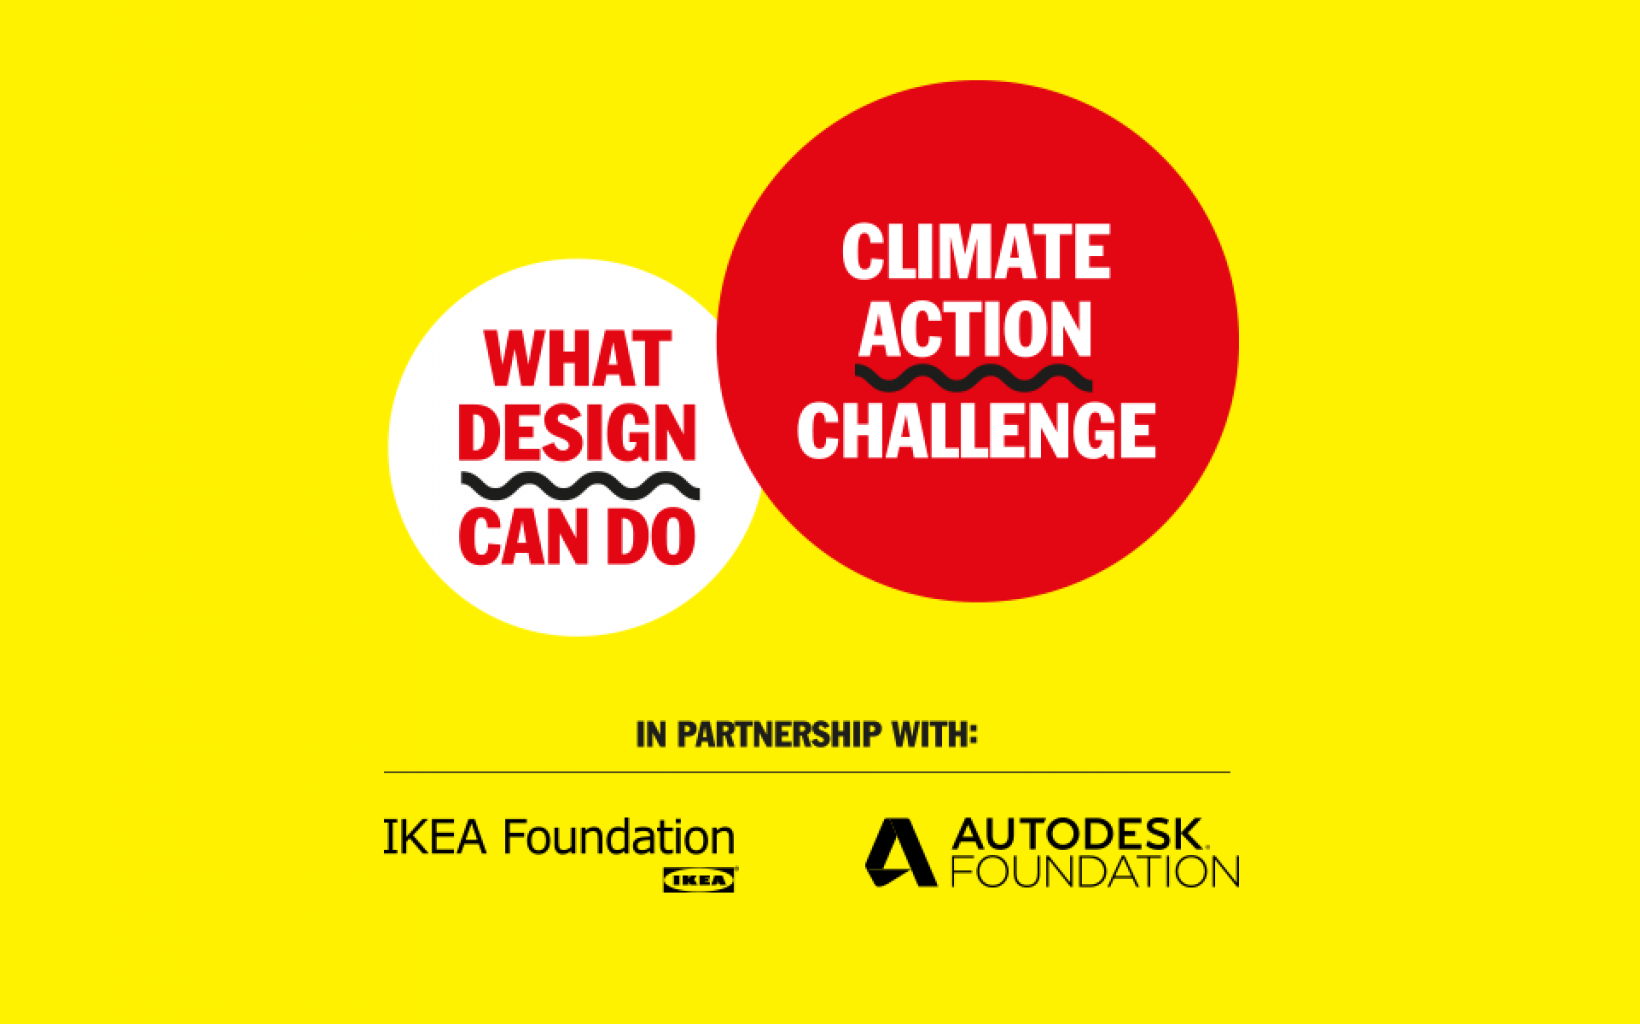 Climate Action Challenge Partners